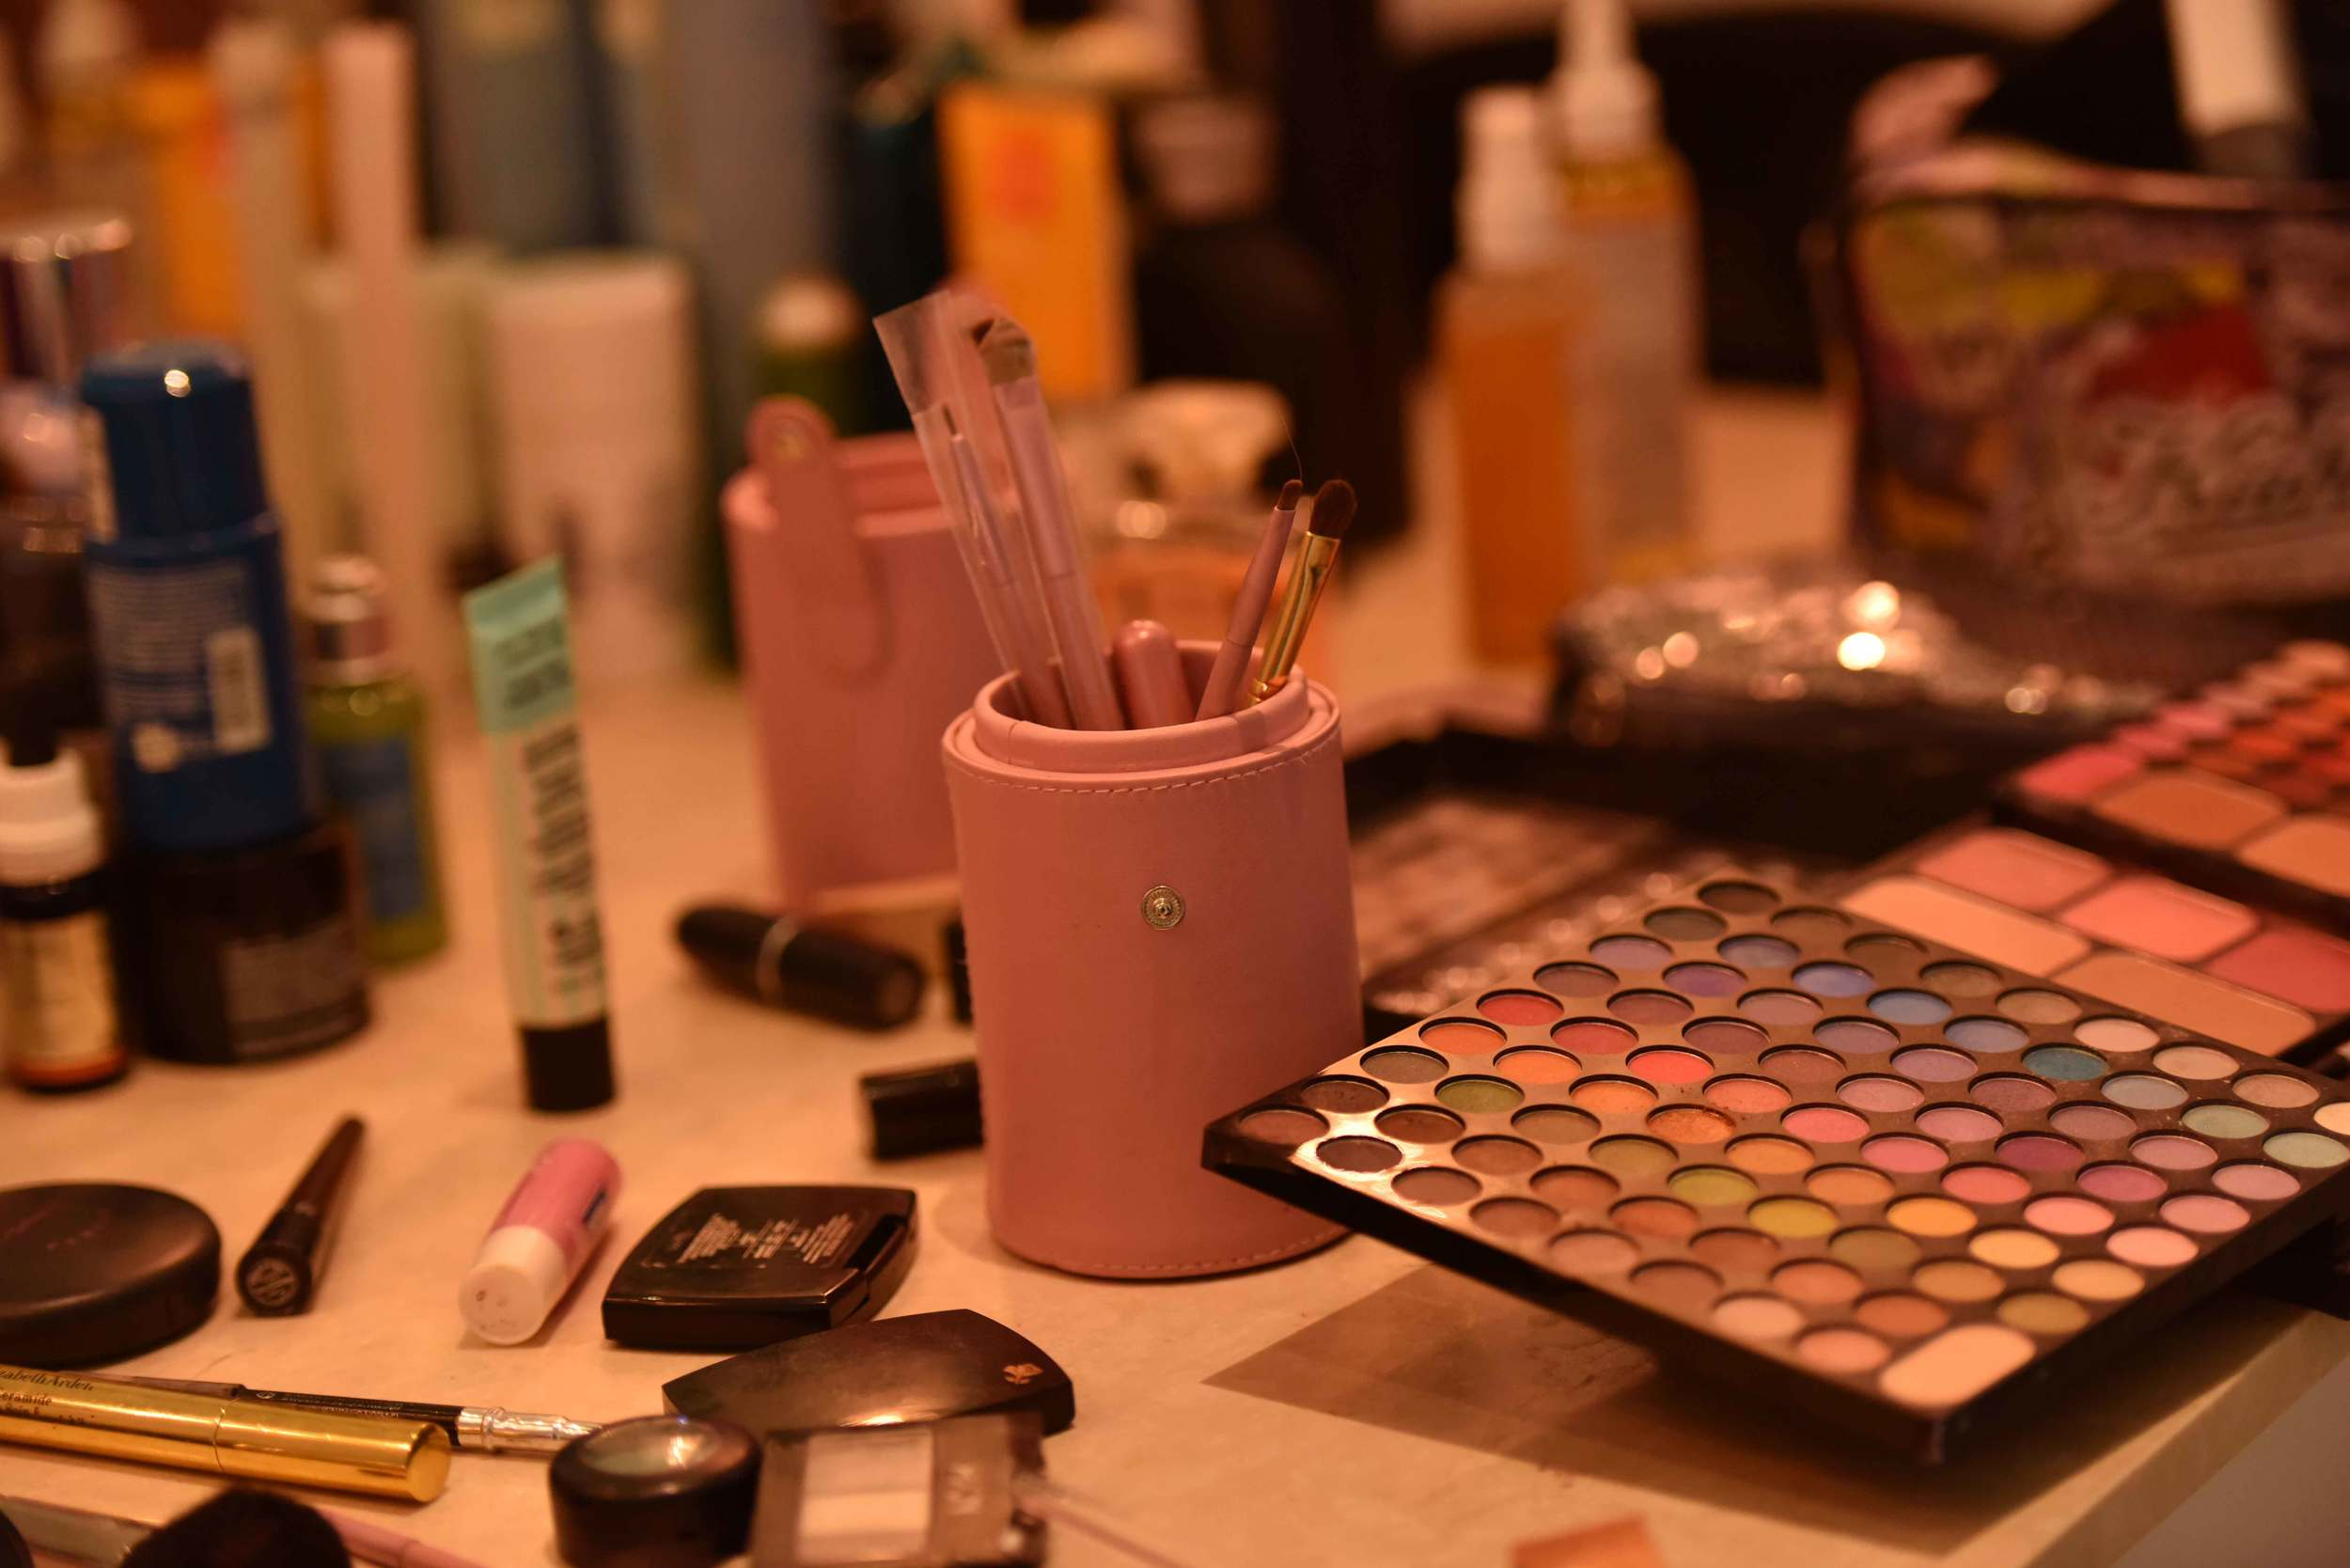 good make-up is must for a good fashion photoshoot. Image©gunjanvirk